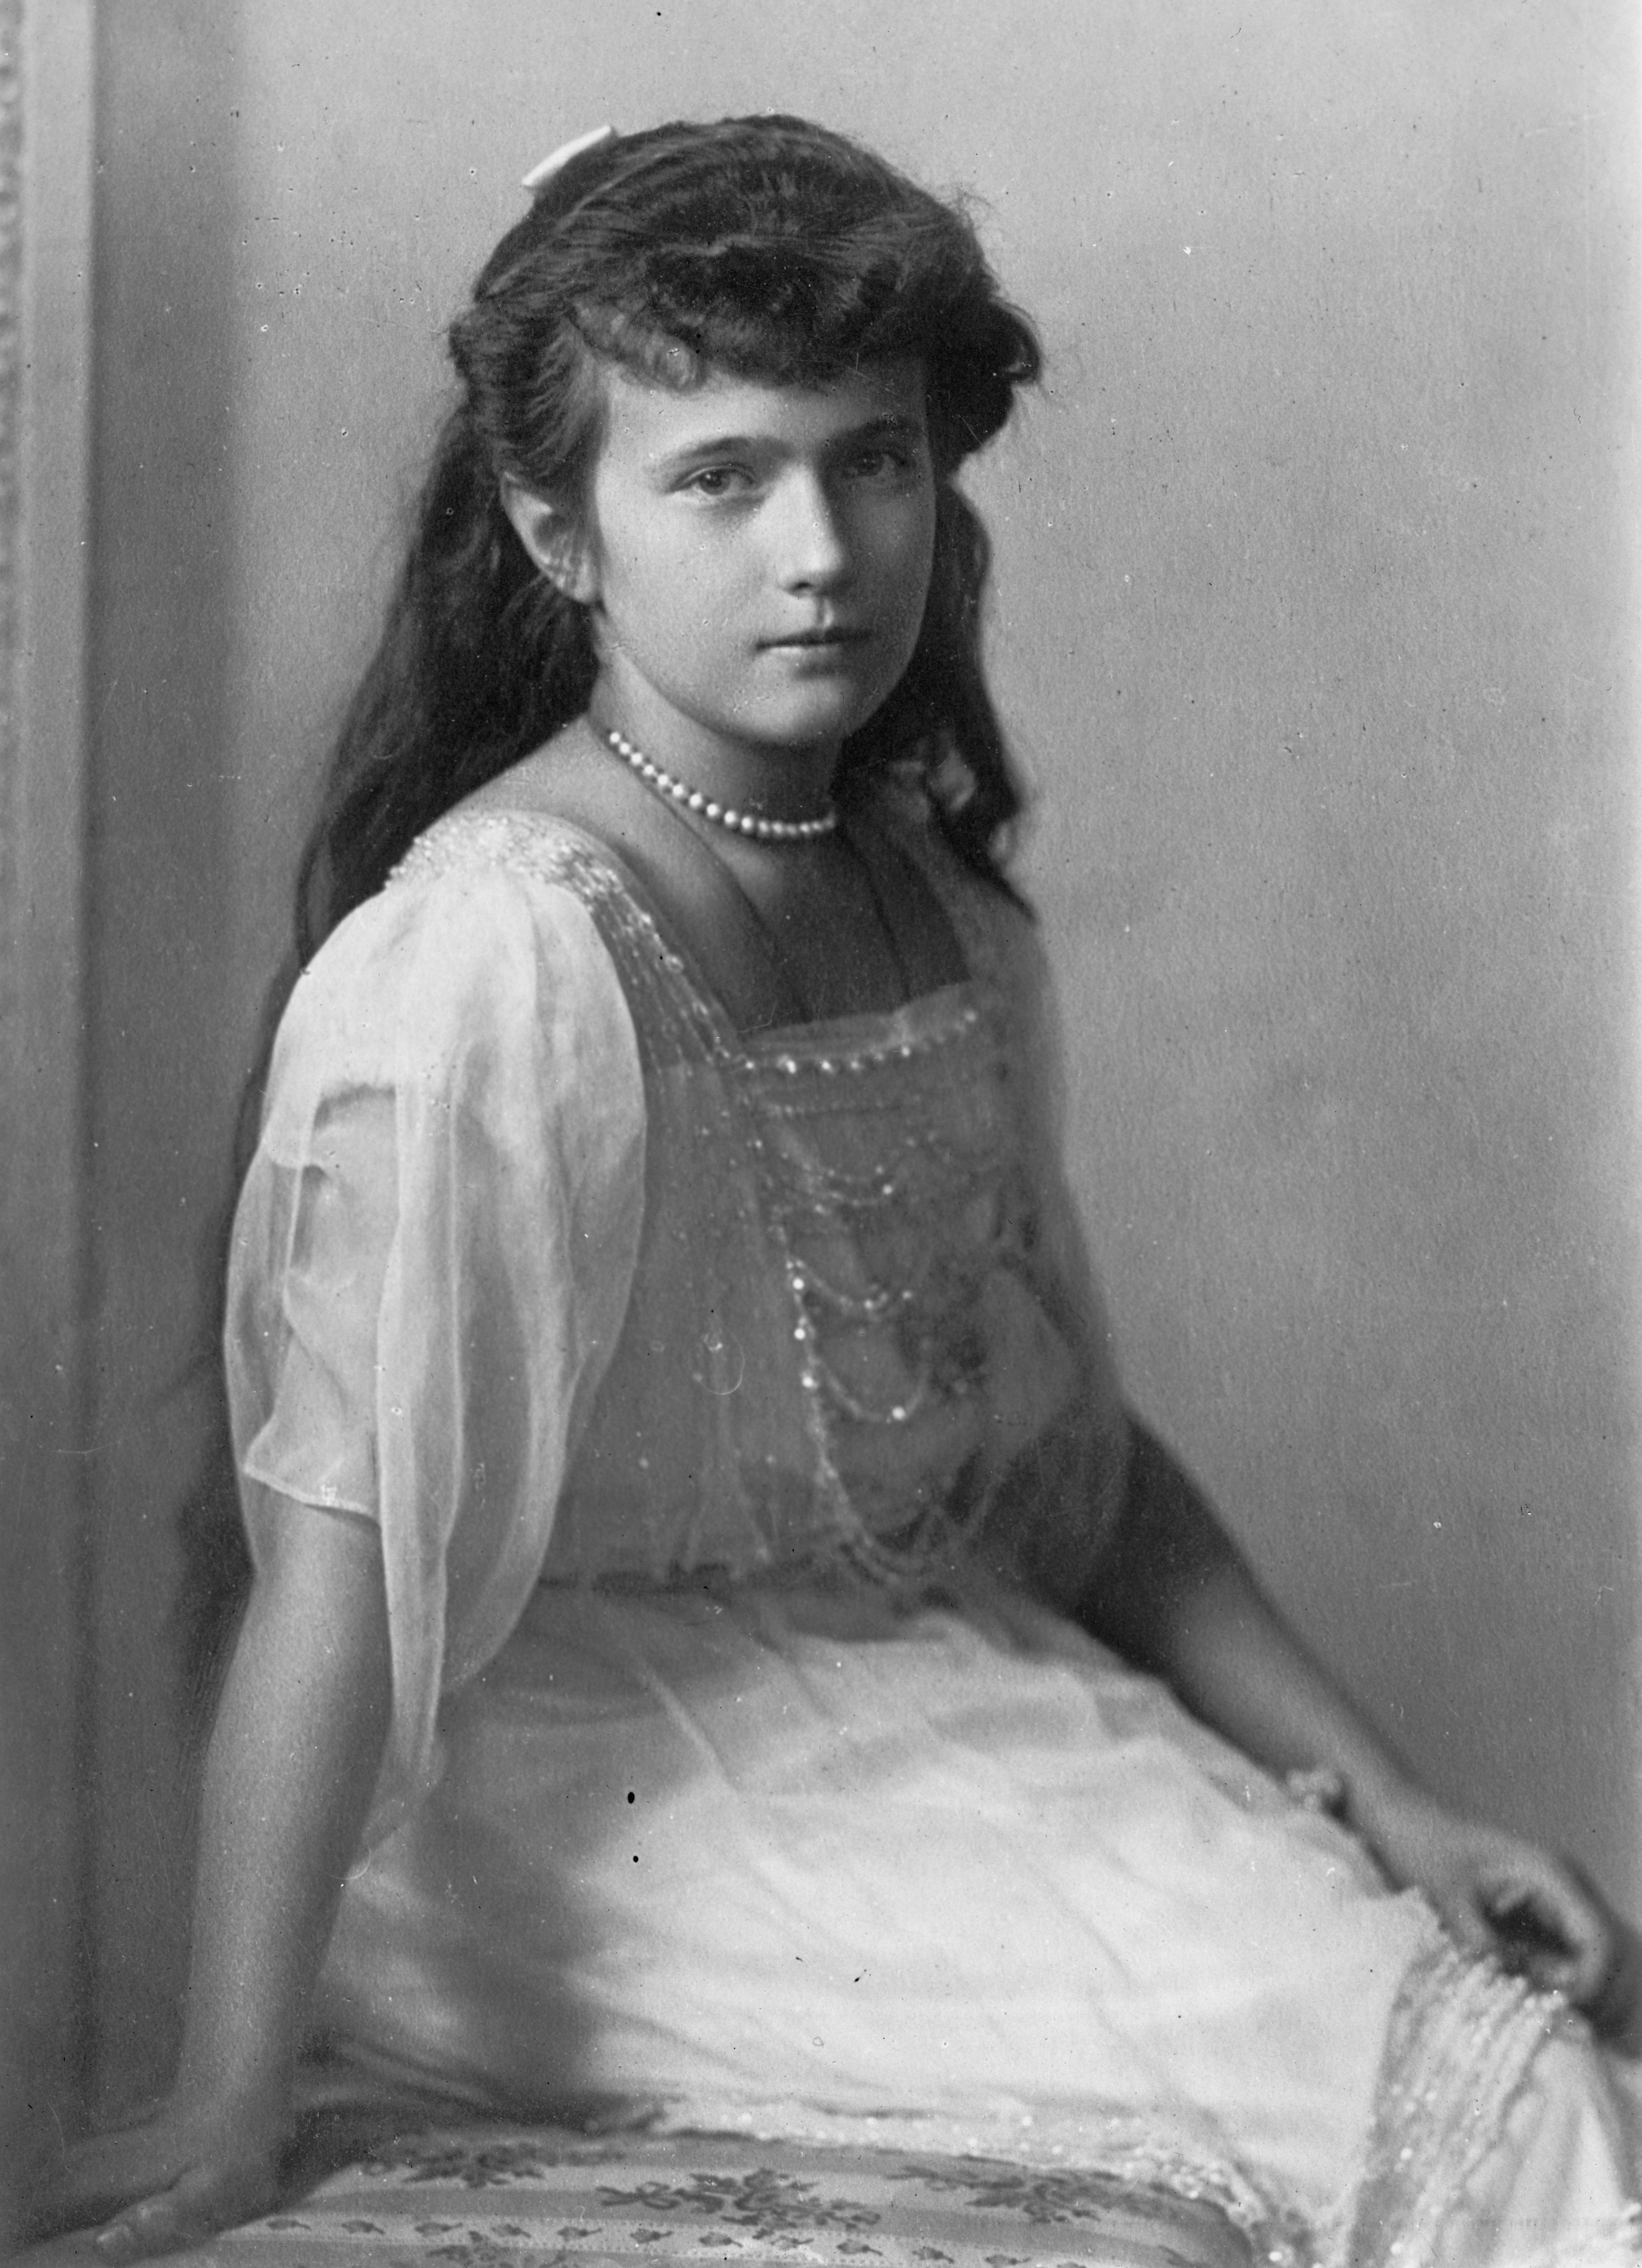 Grand Duchess Anastasia Nikolaevna of Russia Date before 1918 Source George Grantham Bain Collection, Library of Congress, Reproduction number LC-DIG-ggbain-38336 US-LibraryOfCongress-BookLogo.svg This image is available from the United States Library of Congress's Prints and Photographs division under the digital ID ggbain.38336. This tag does not indicate the copyright status of the attached work. A normal copyright tag is still required. See Commons:Licensing for more information. العربية | беларуская (тарашкевіца) | čeština | Deutsch | English | español | فارسی | suomi | français | עברית | magyar | italiano | 日本語 | lietuvių | македонски | മലയാളം | Nederlands | polski | português | português do Brasil | русский | sicilianu | slovenčina | slovenščina | Türkçe | українська | 中文 | 中文(简体) | 中文(繁體) | +/− Author Boissonnas et Eggler, St. Petersburg, Nevsky 24. – Bain News Service, publisher.